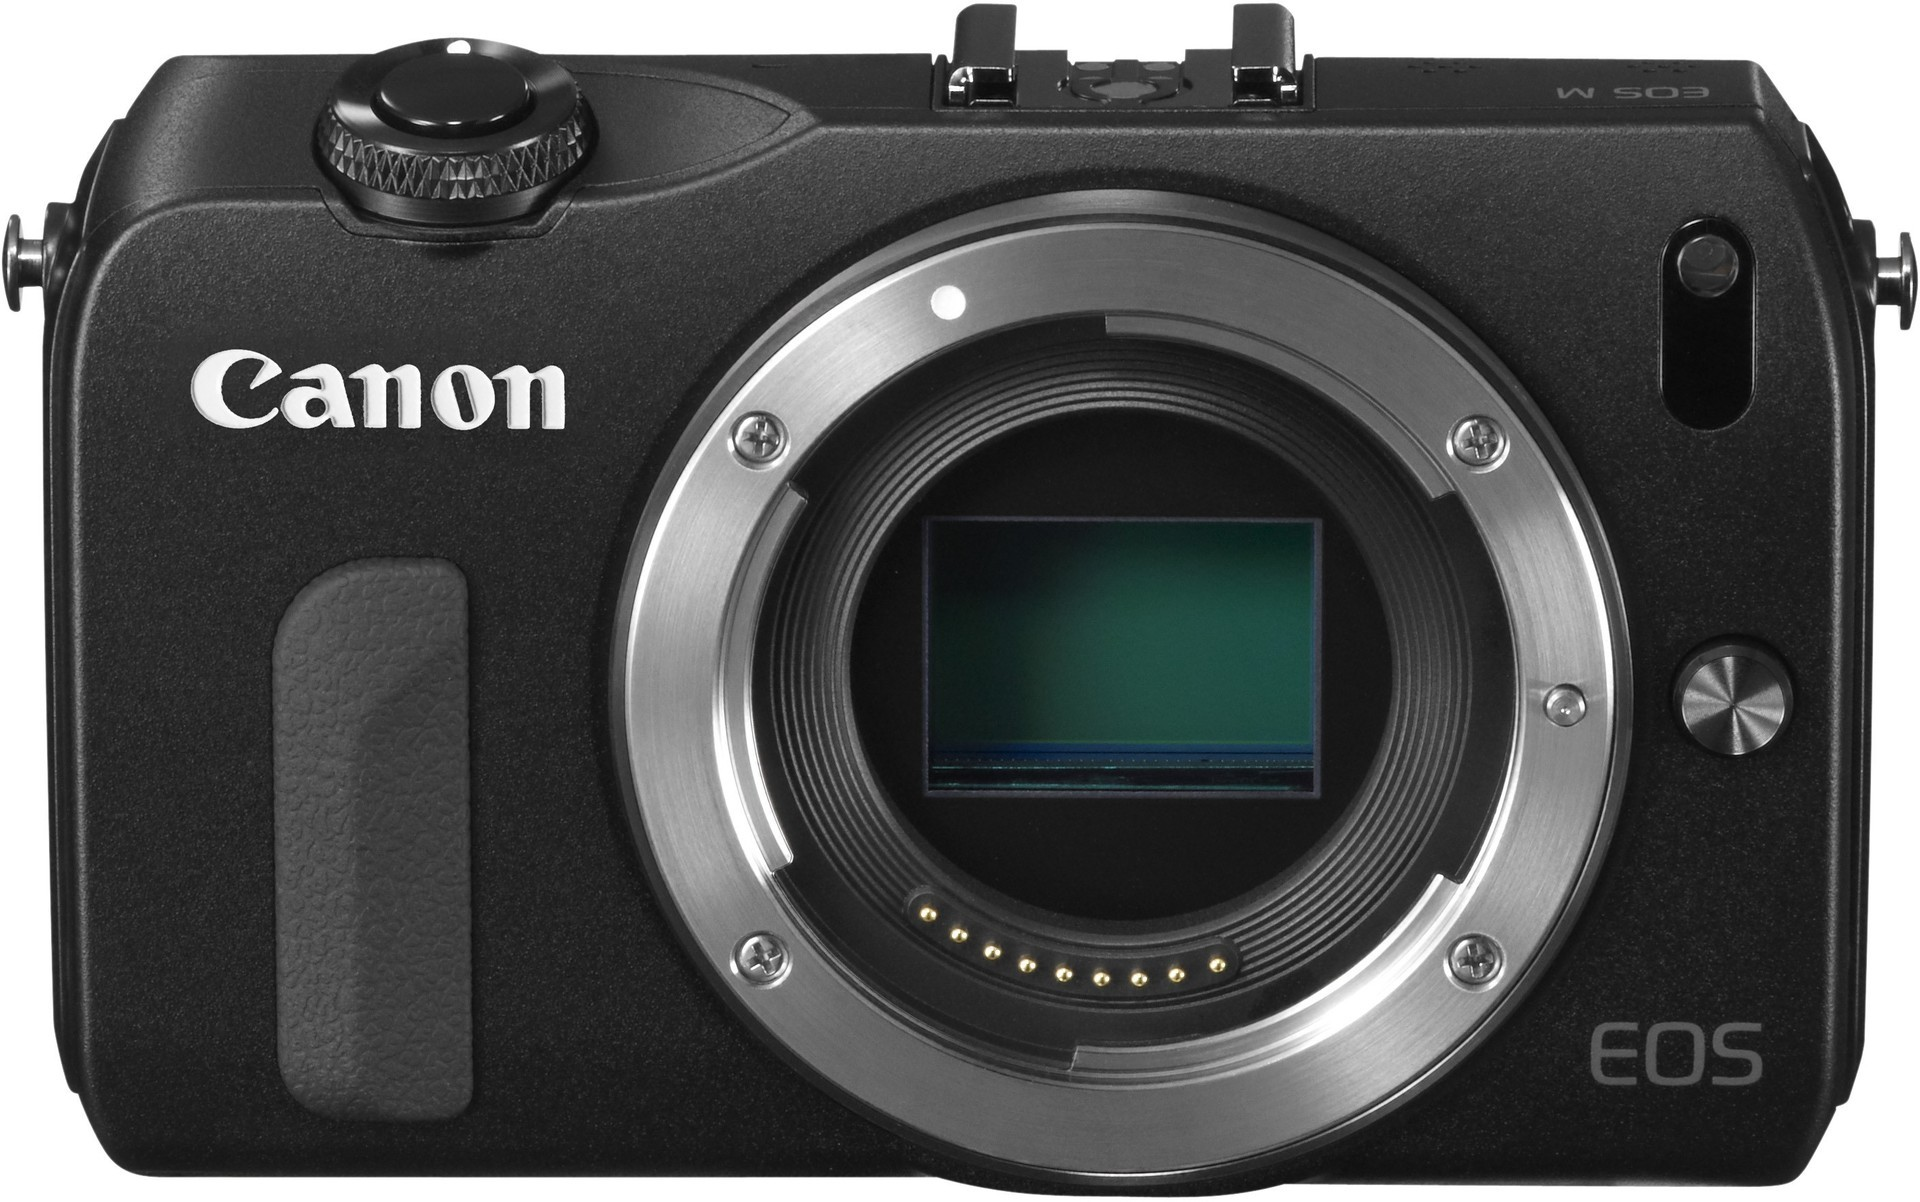 can you update canon 650d with1.0.1 firmware to 1.0.5 update